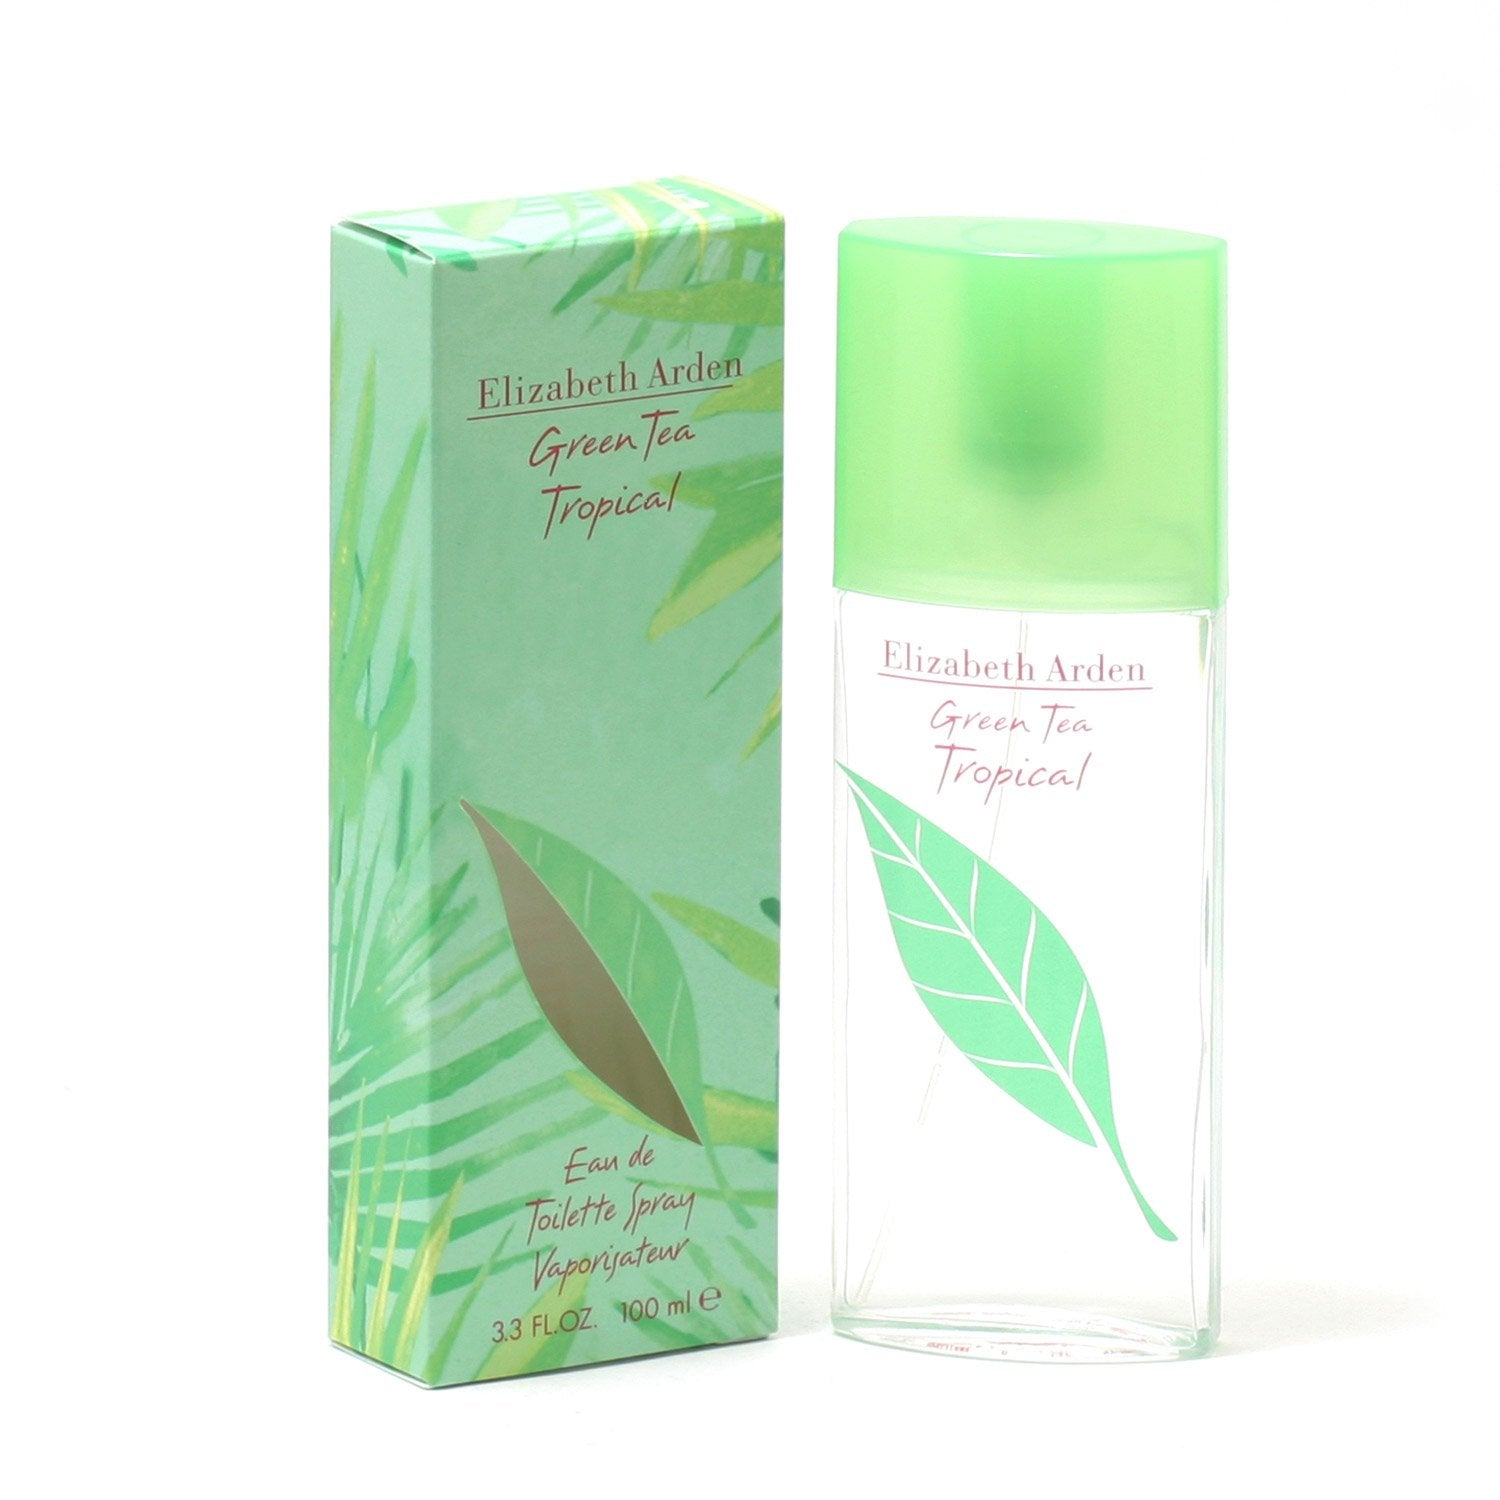 Perfume - GREEN TEA TROPICAL FOR WOMEN BY ELIZABETH ARDEN - EAU DE TOILETTE SPRAY, 3.3 OZ